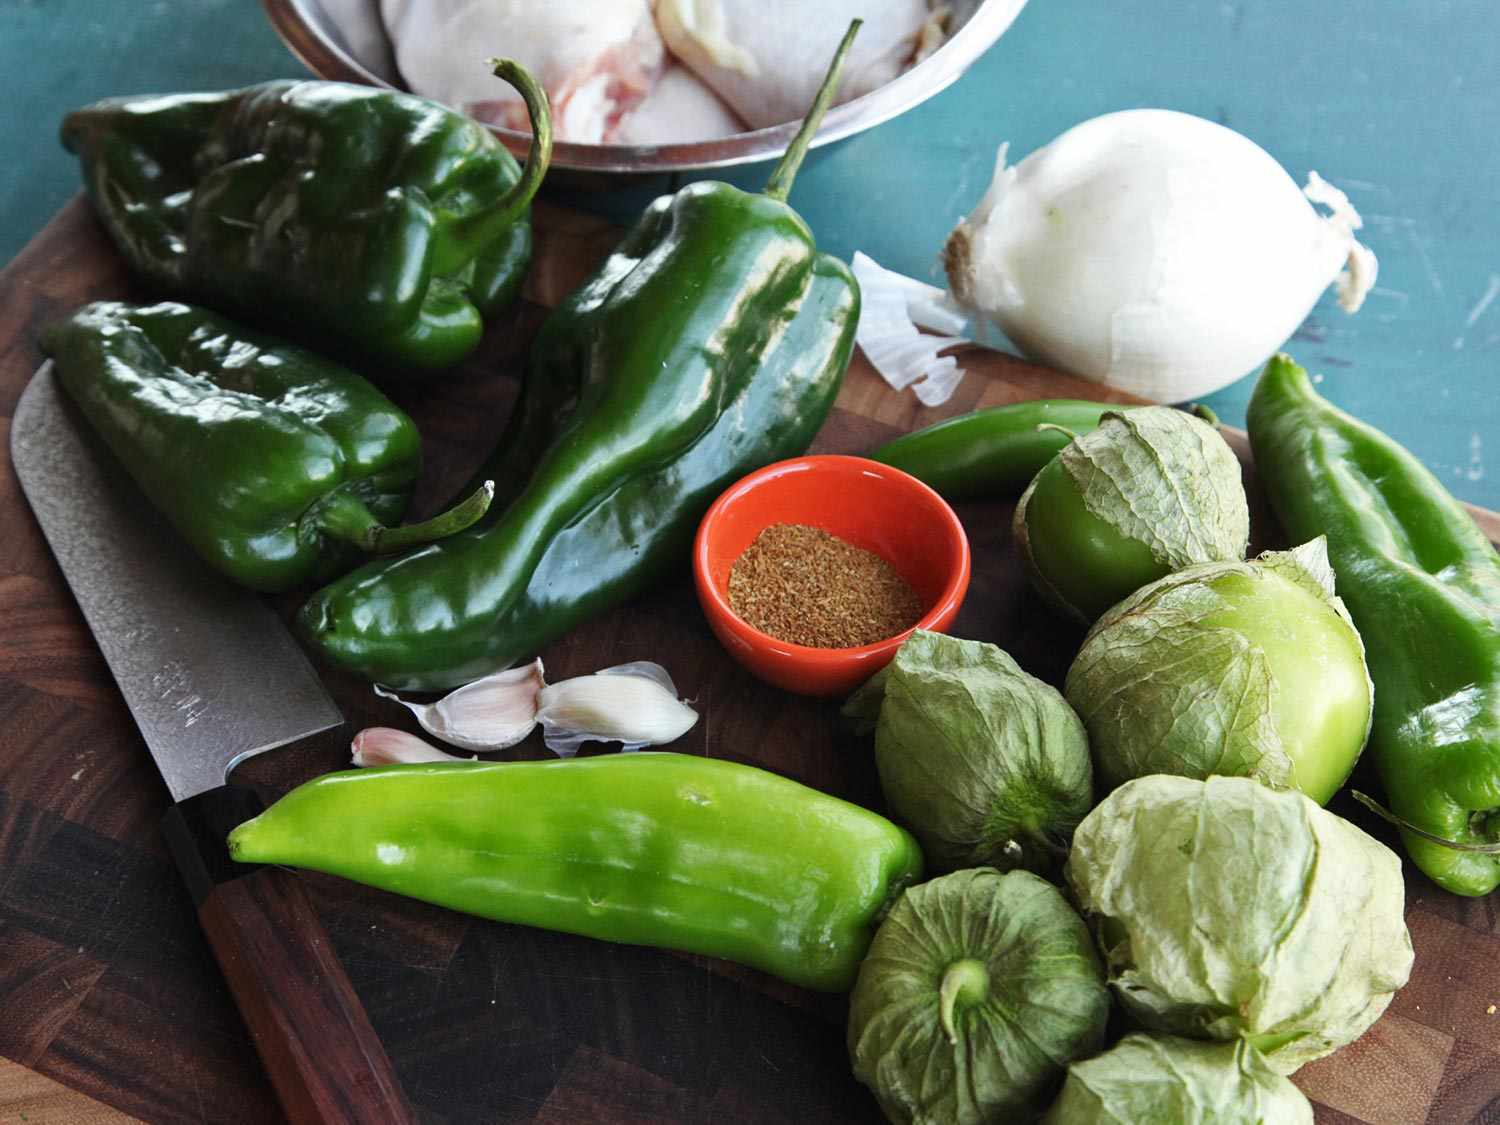 Green chiles, tomatillos, garlic, and spices for chicken green chili (chile verde).